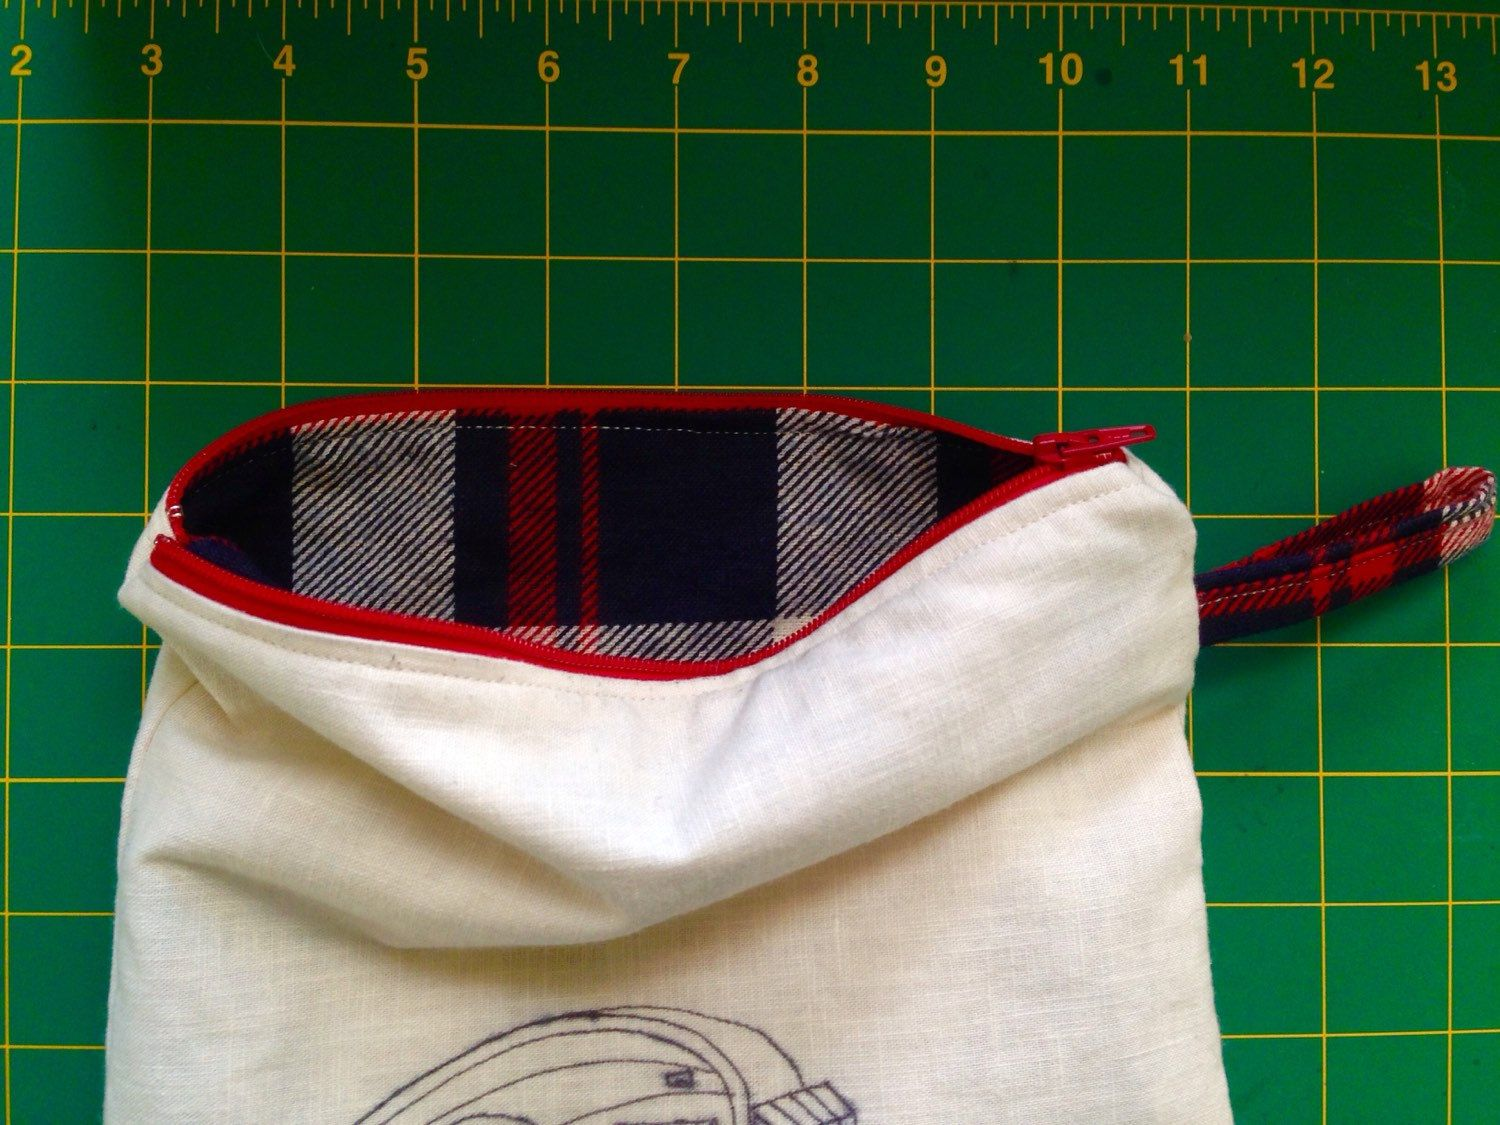 Camper pouch by keriBdesigns on Etsy https://www.etsy.com/listing/270007591/camper-pouch